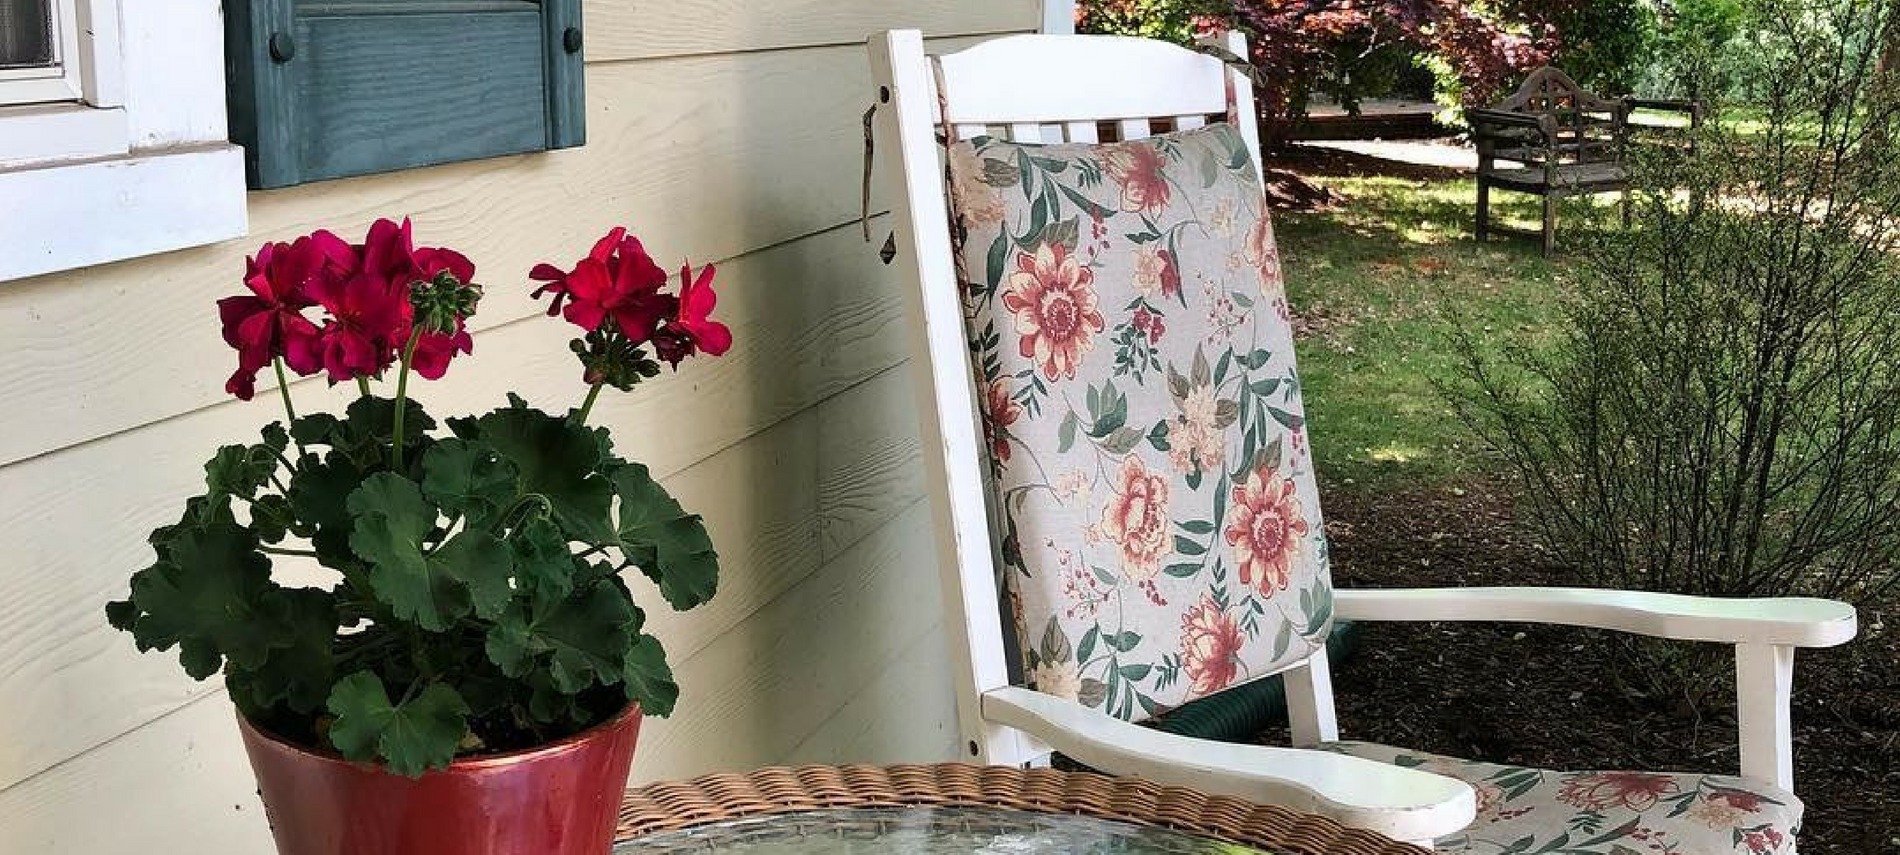 red geranium with green leaves in burgundy pot on wicker table with a white rocking chair and flowered cushions